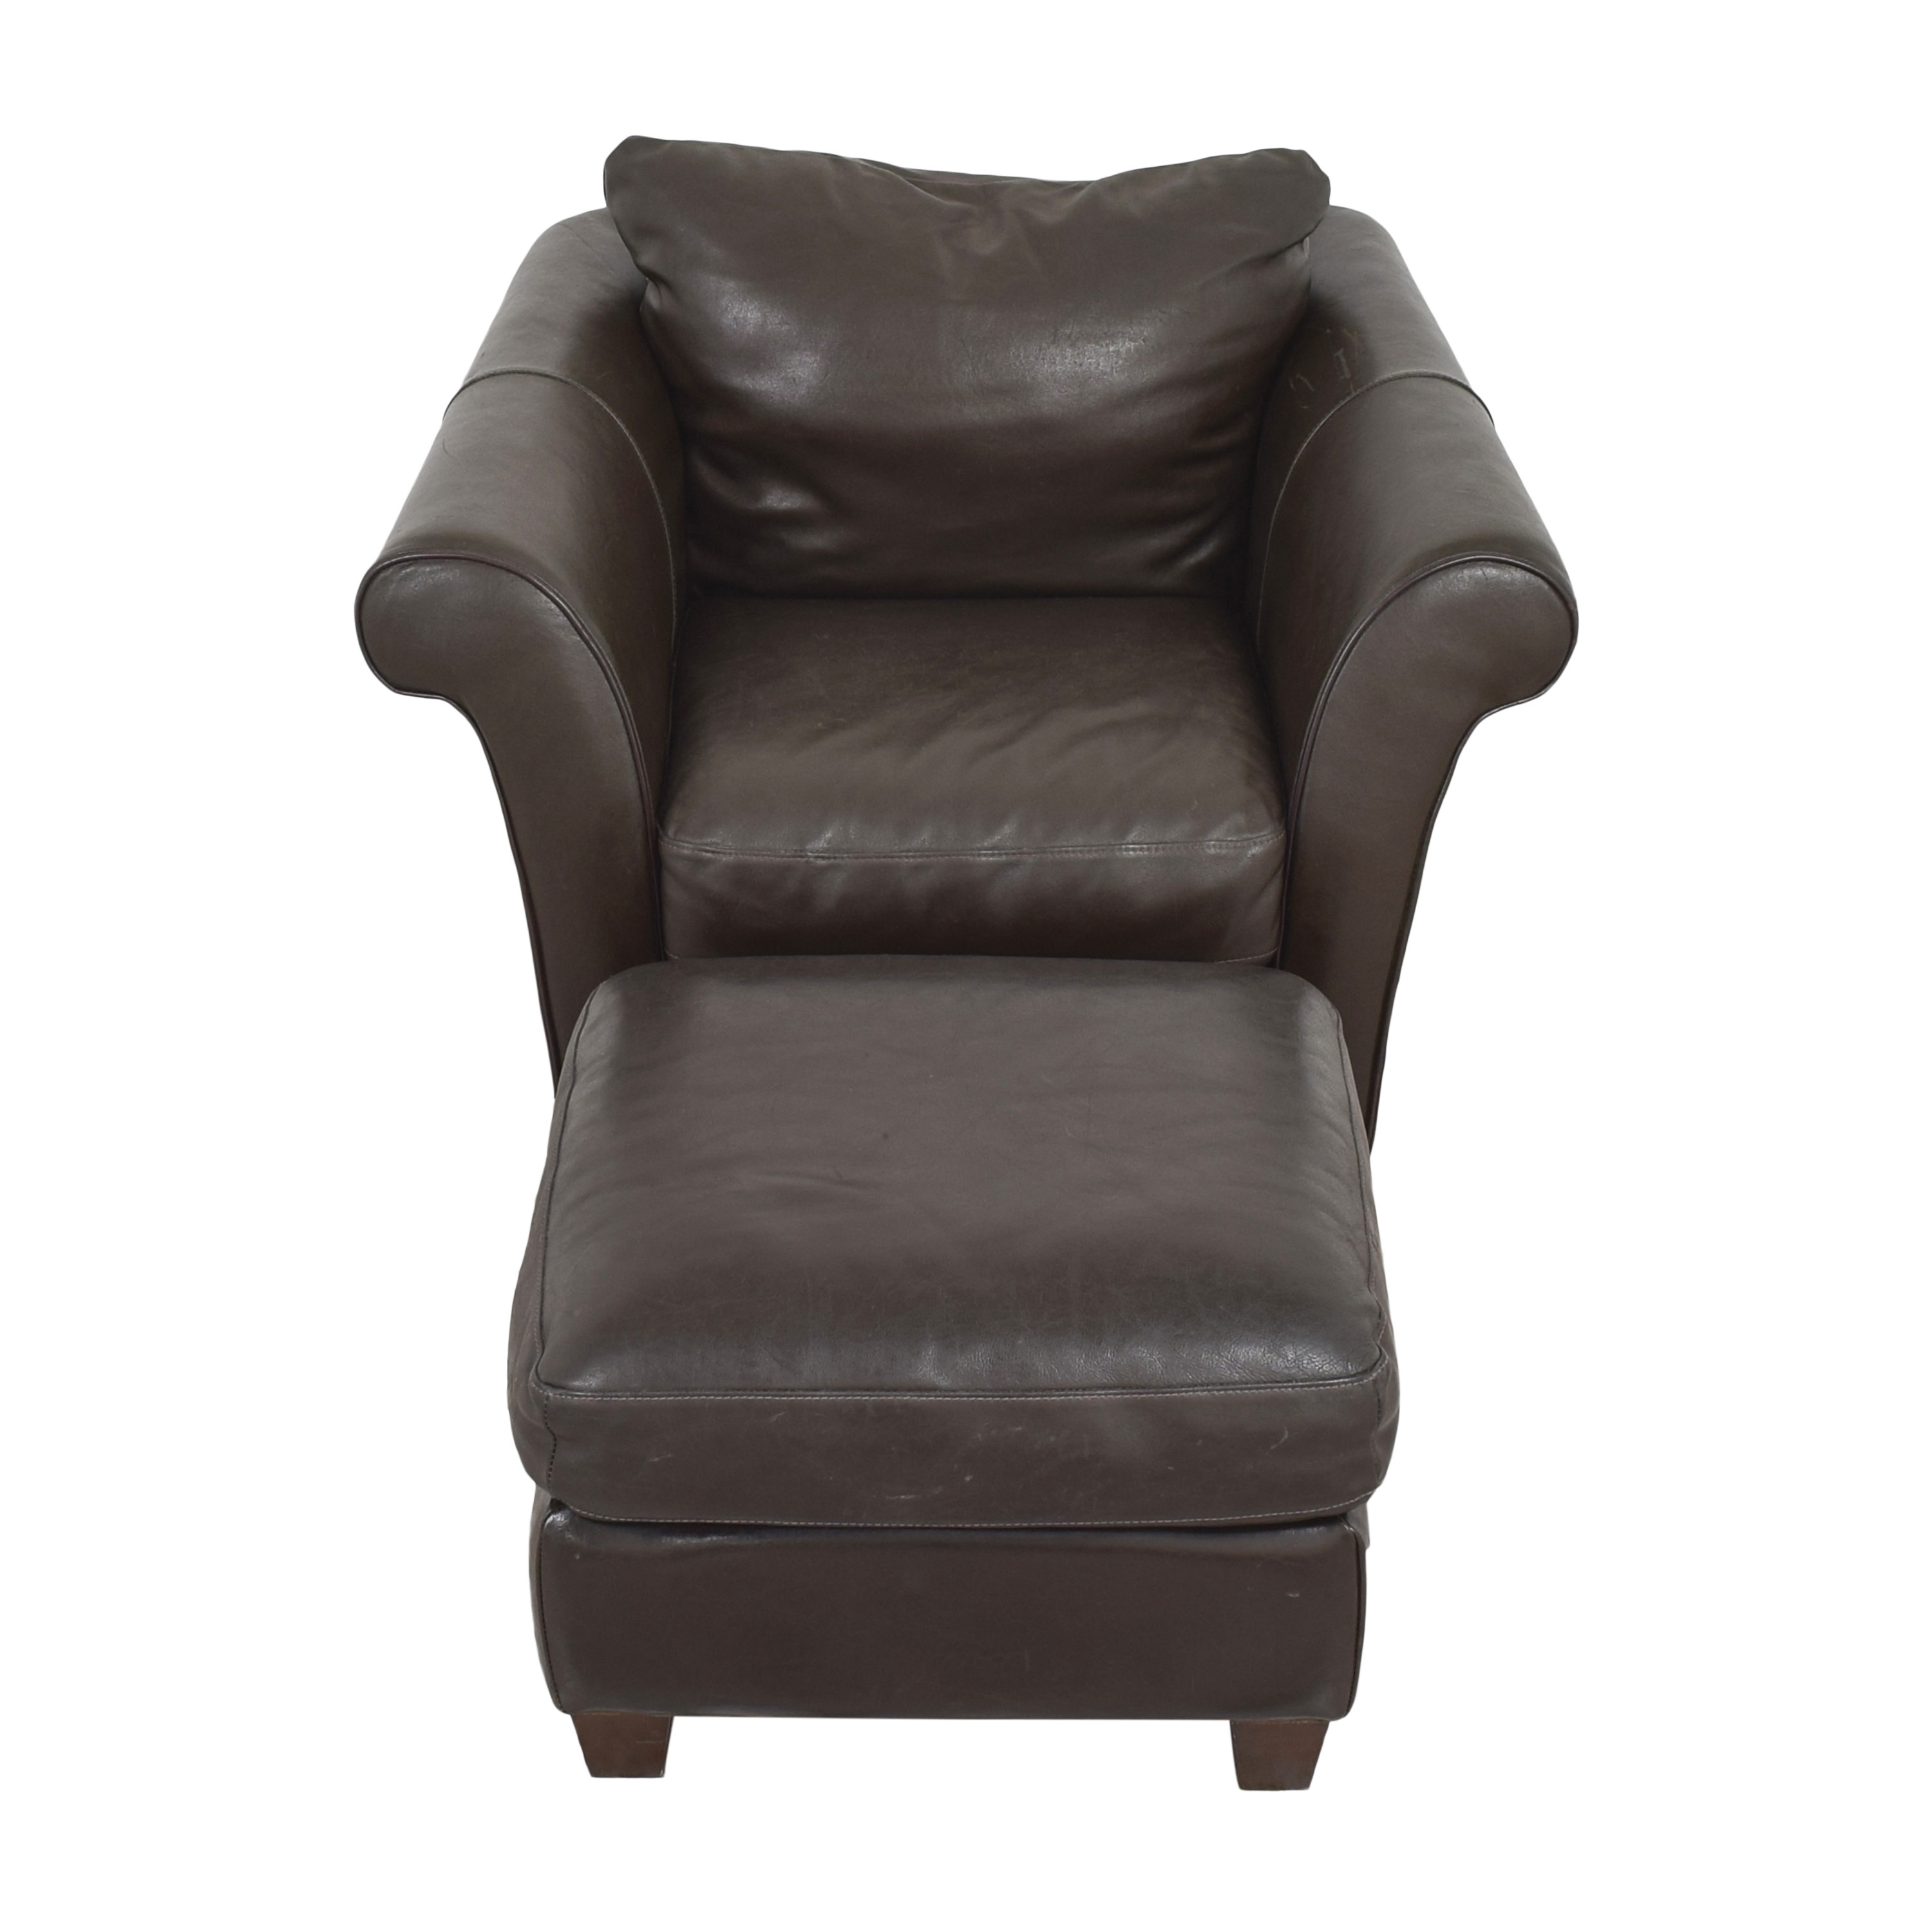 buy Macy's Lounge Chair with Ottoman Macy's Accent Chairs